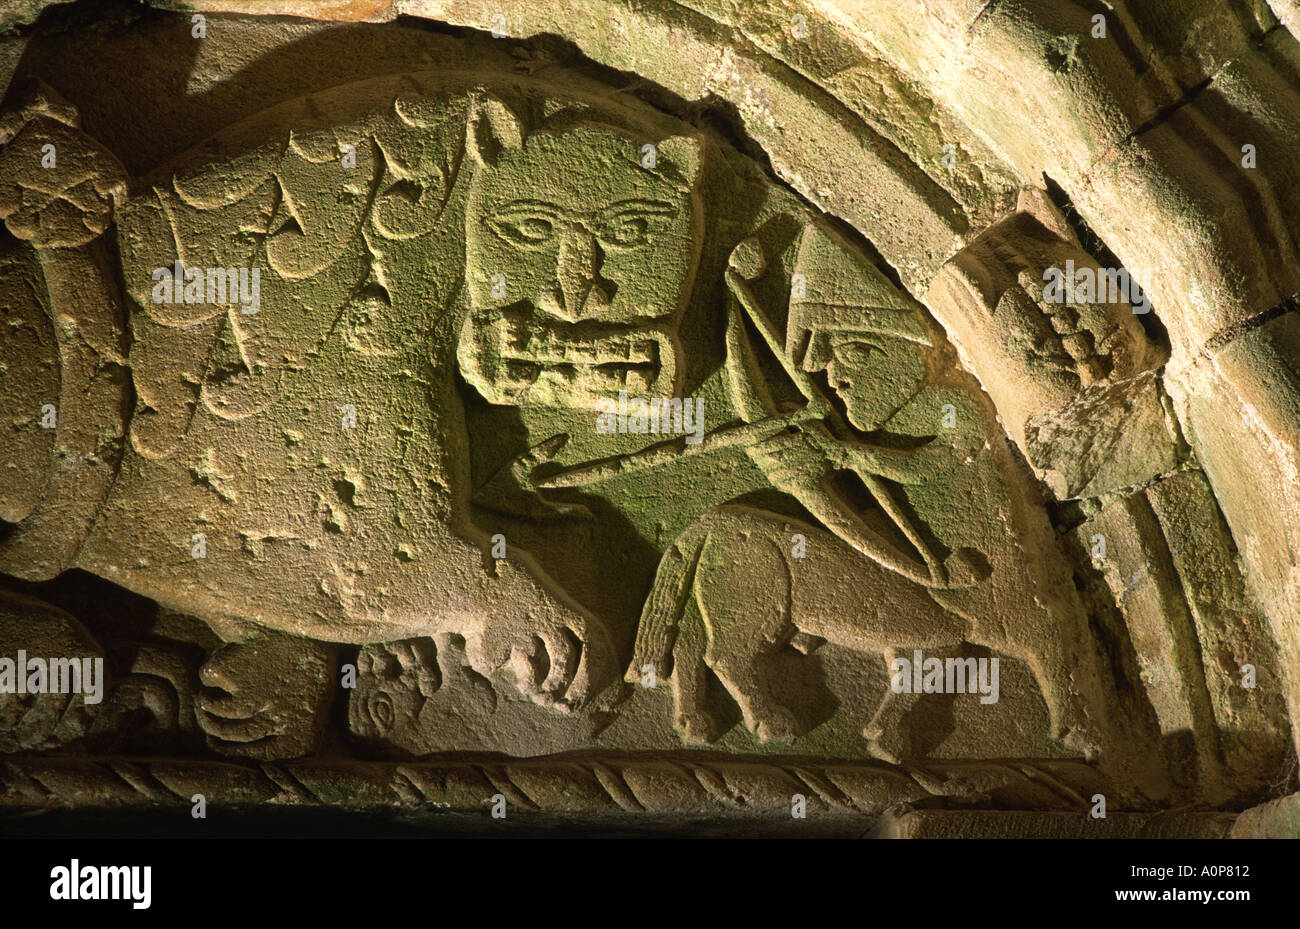 Tympanum above north door of Cormac's Chapel, Rock of Cashel. Norman centaur kills Celtic Christian lion. Co. Tipperary, Ireland - Stock Image